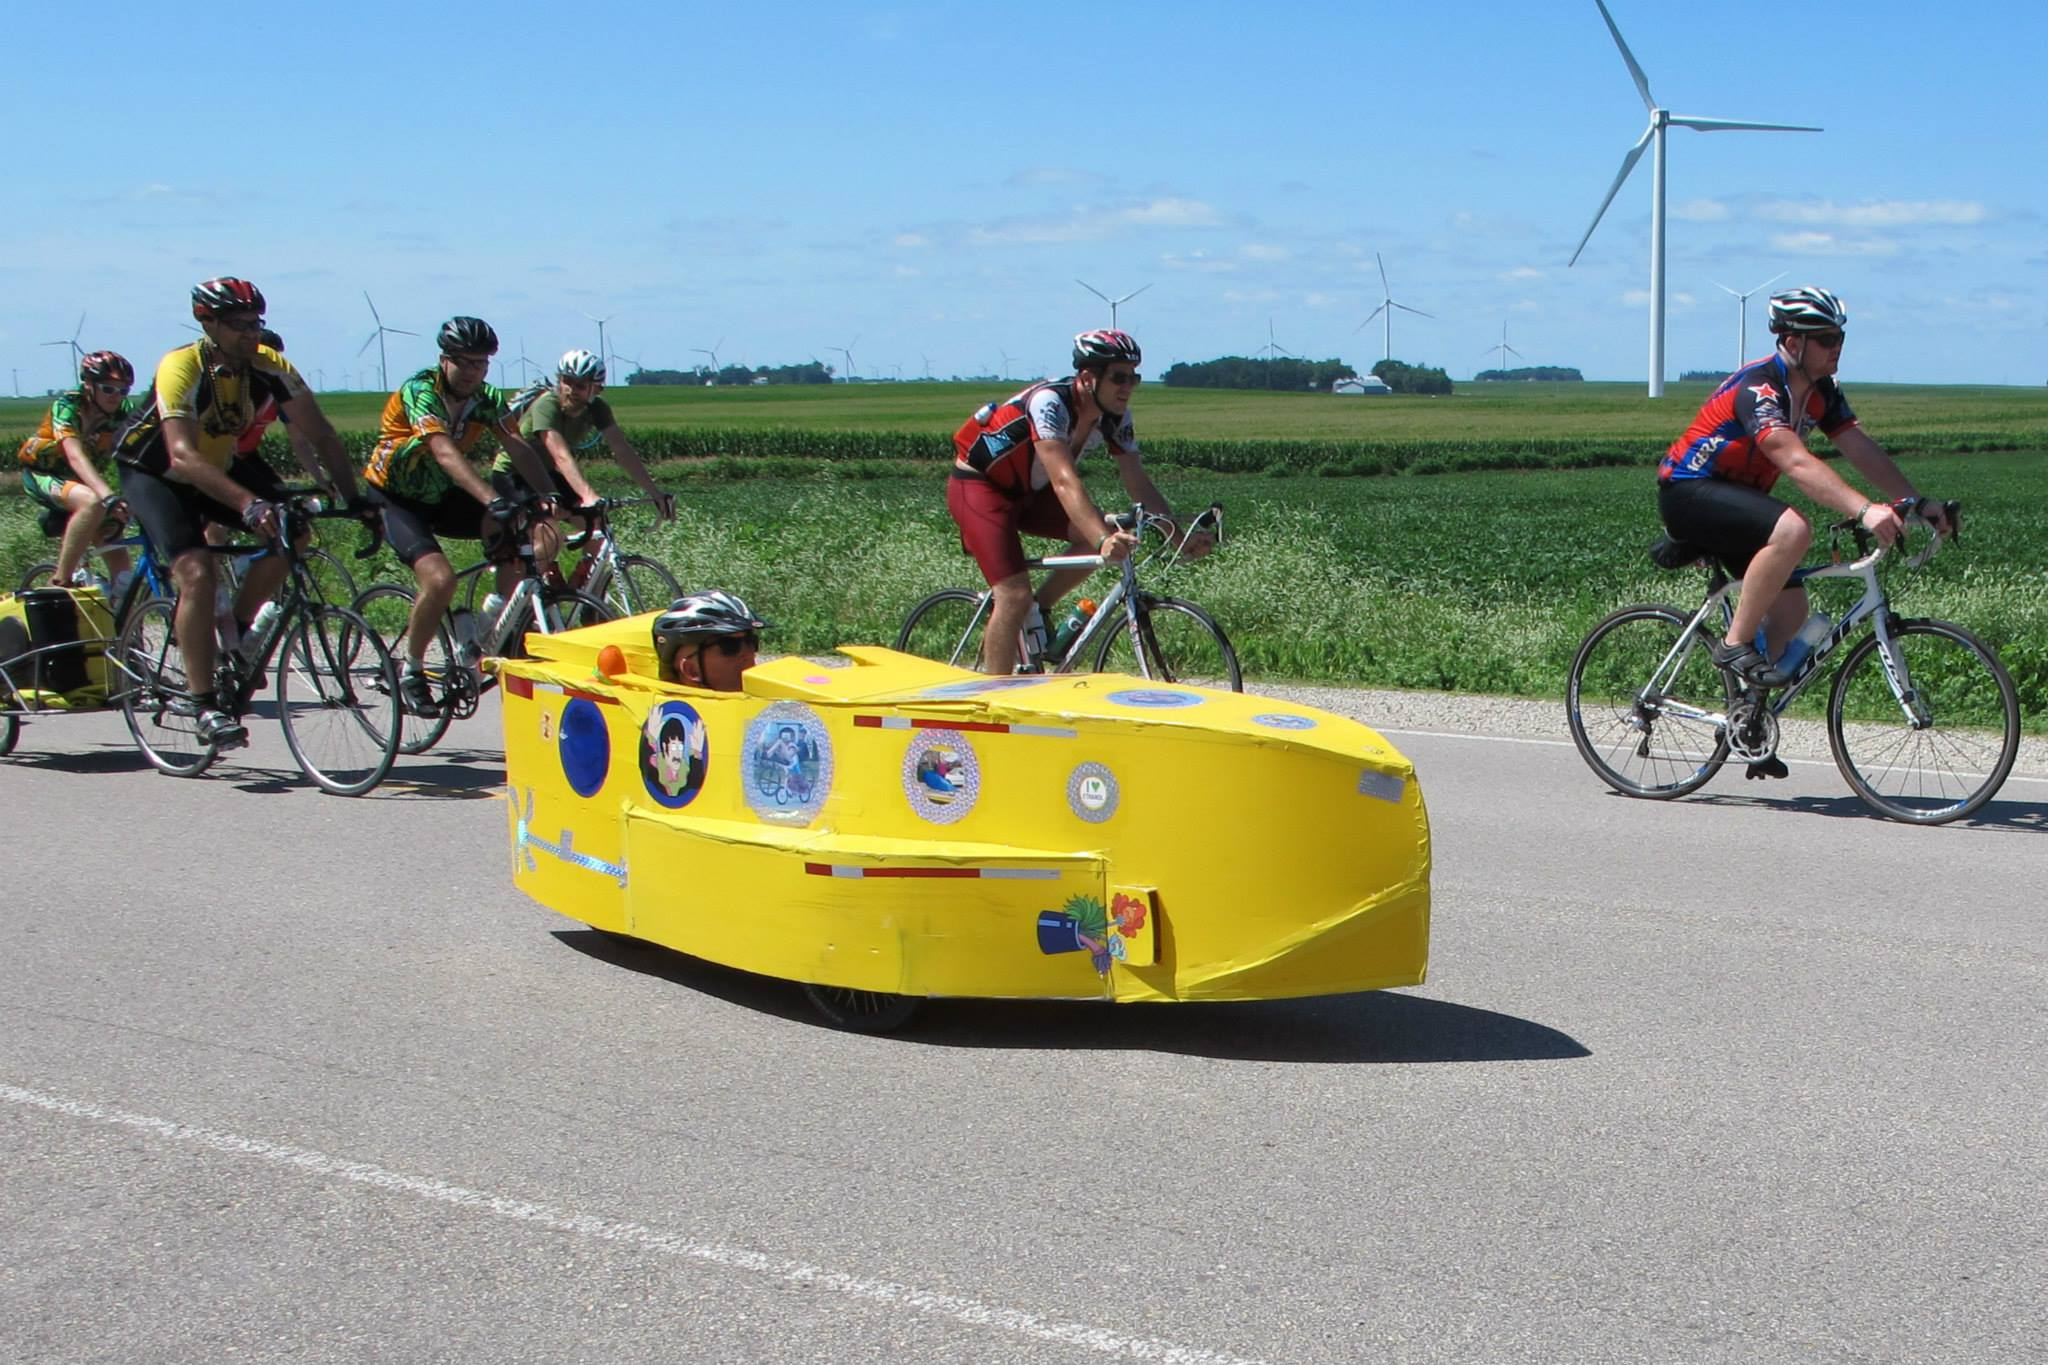 Yes, that is a pedal-powered Yellow Submarine with onboard speakers playing Beatles' hits.